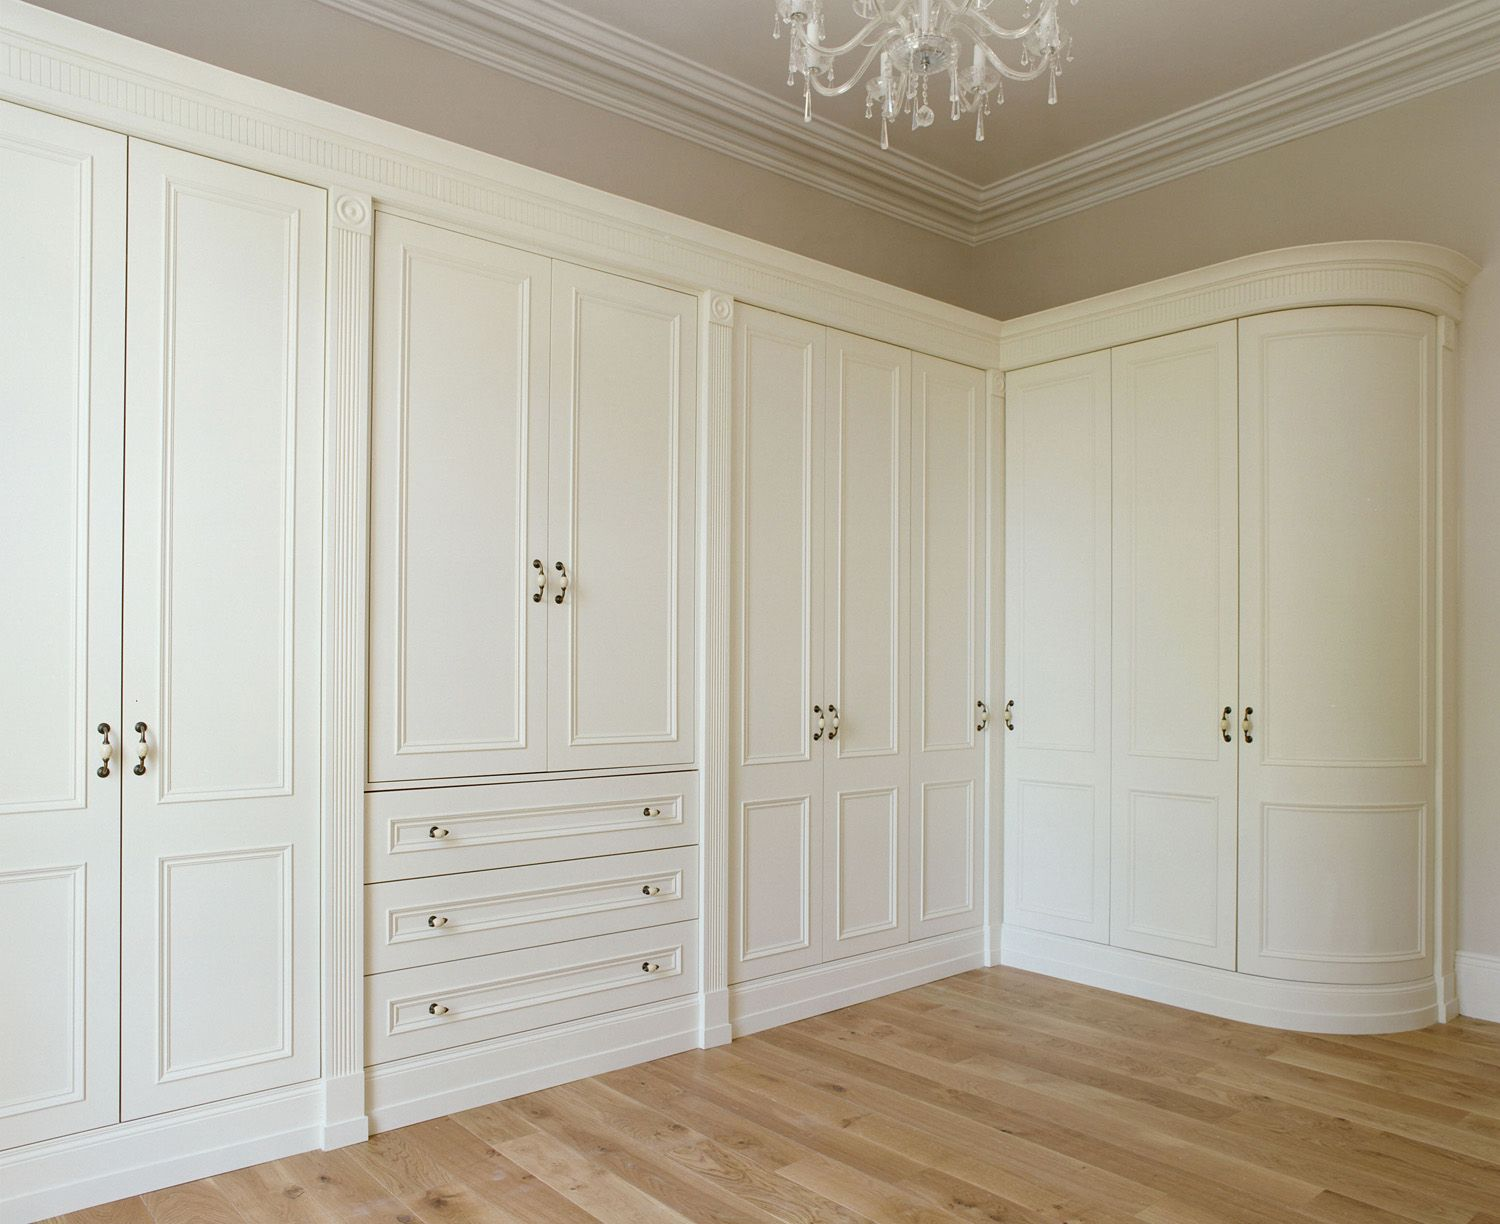 Built In Wardrobe Designs For Bedroom Unique Newcastle Design Bedroom Furniture Fitted Wardrobes Bedroom Decorating Design